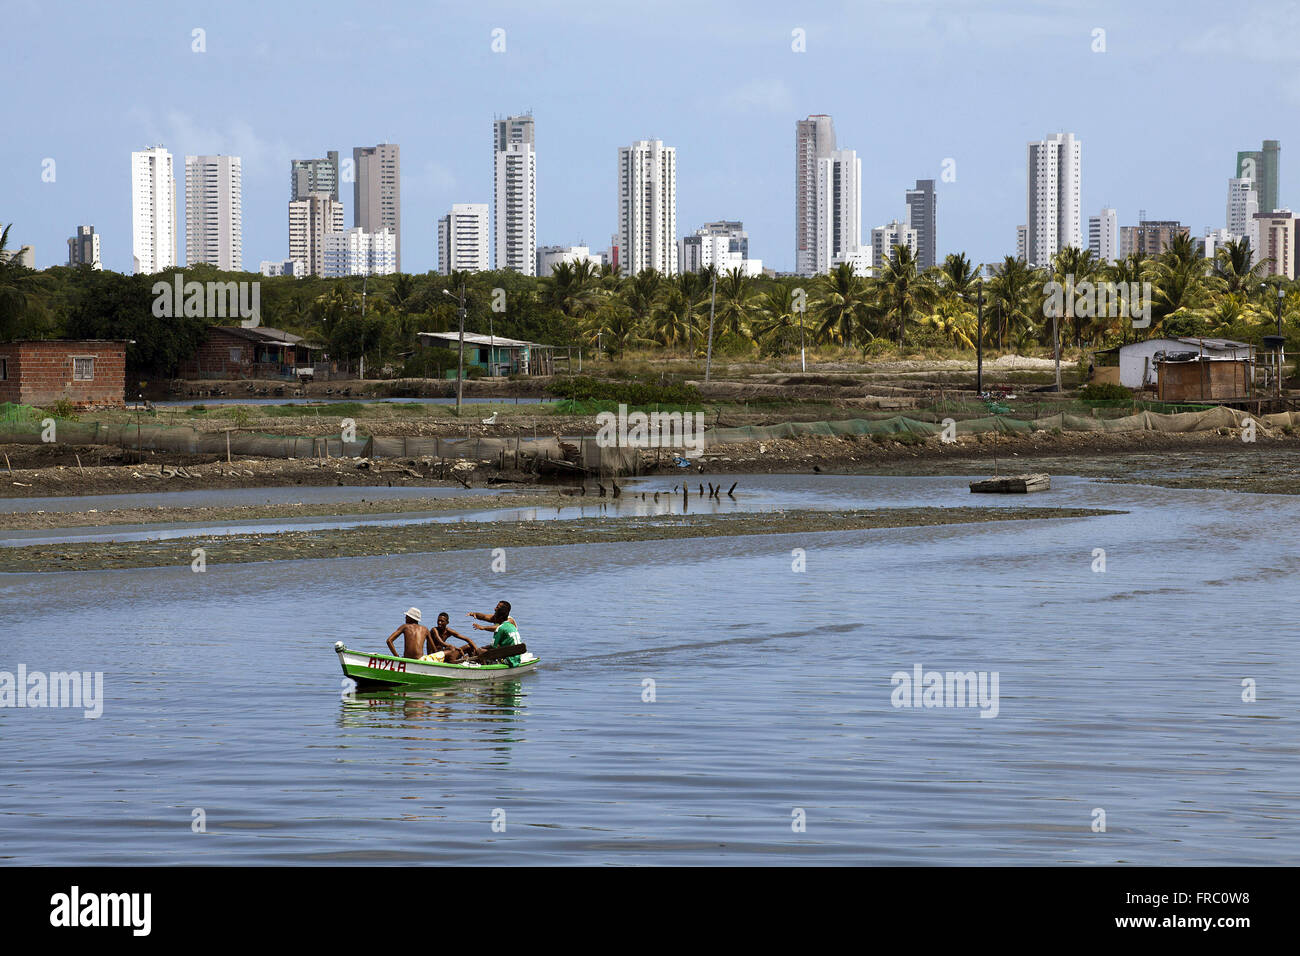 Boat on the River Island Capibaribe with God and building from Boa Viagem beach in the background Stock Photo